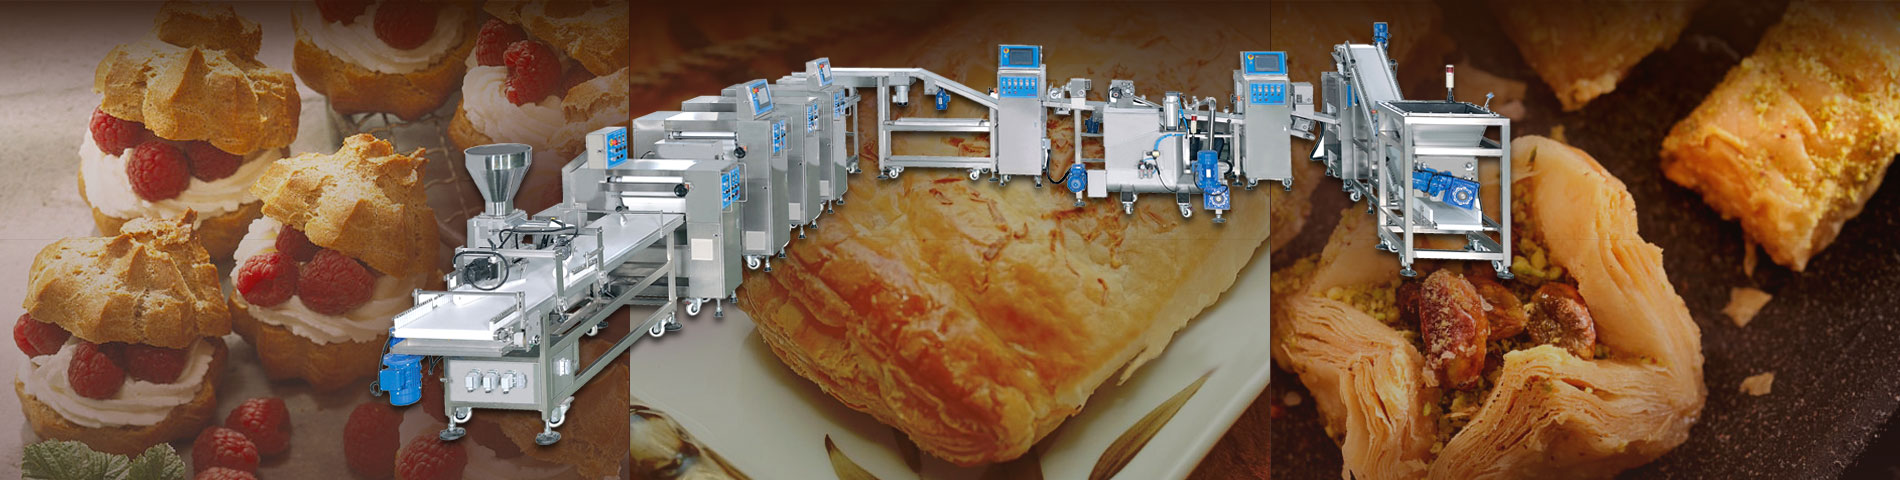 Mesin  Puff Pastry TY3000L pastry